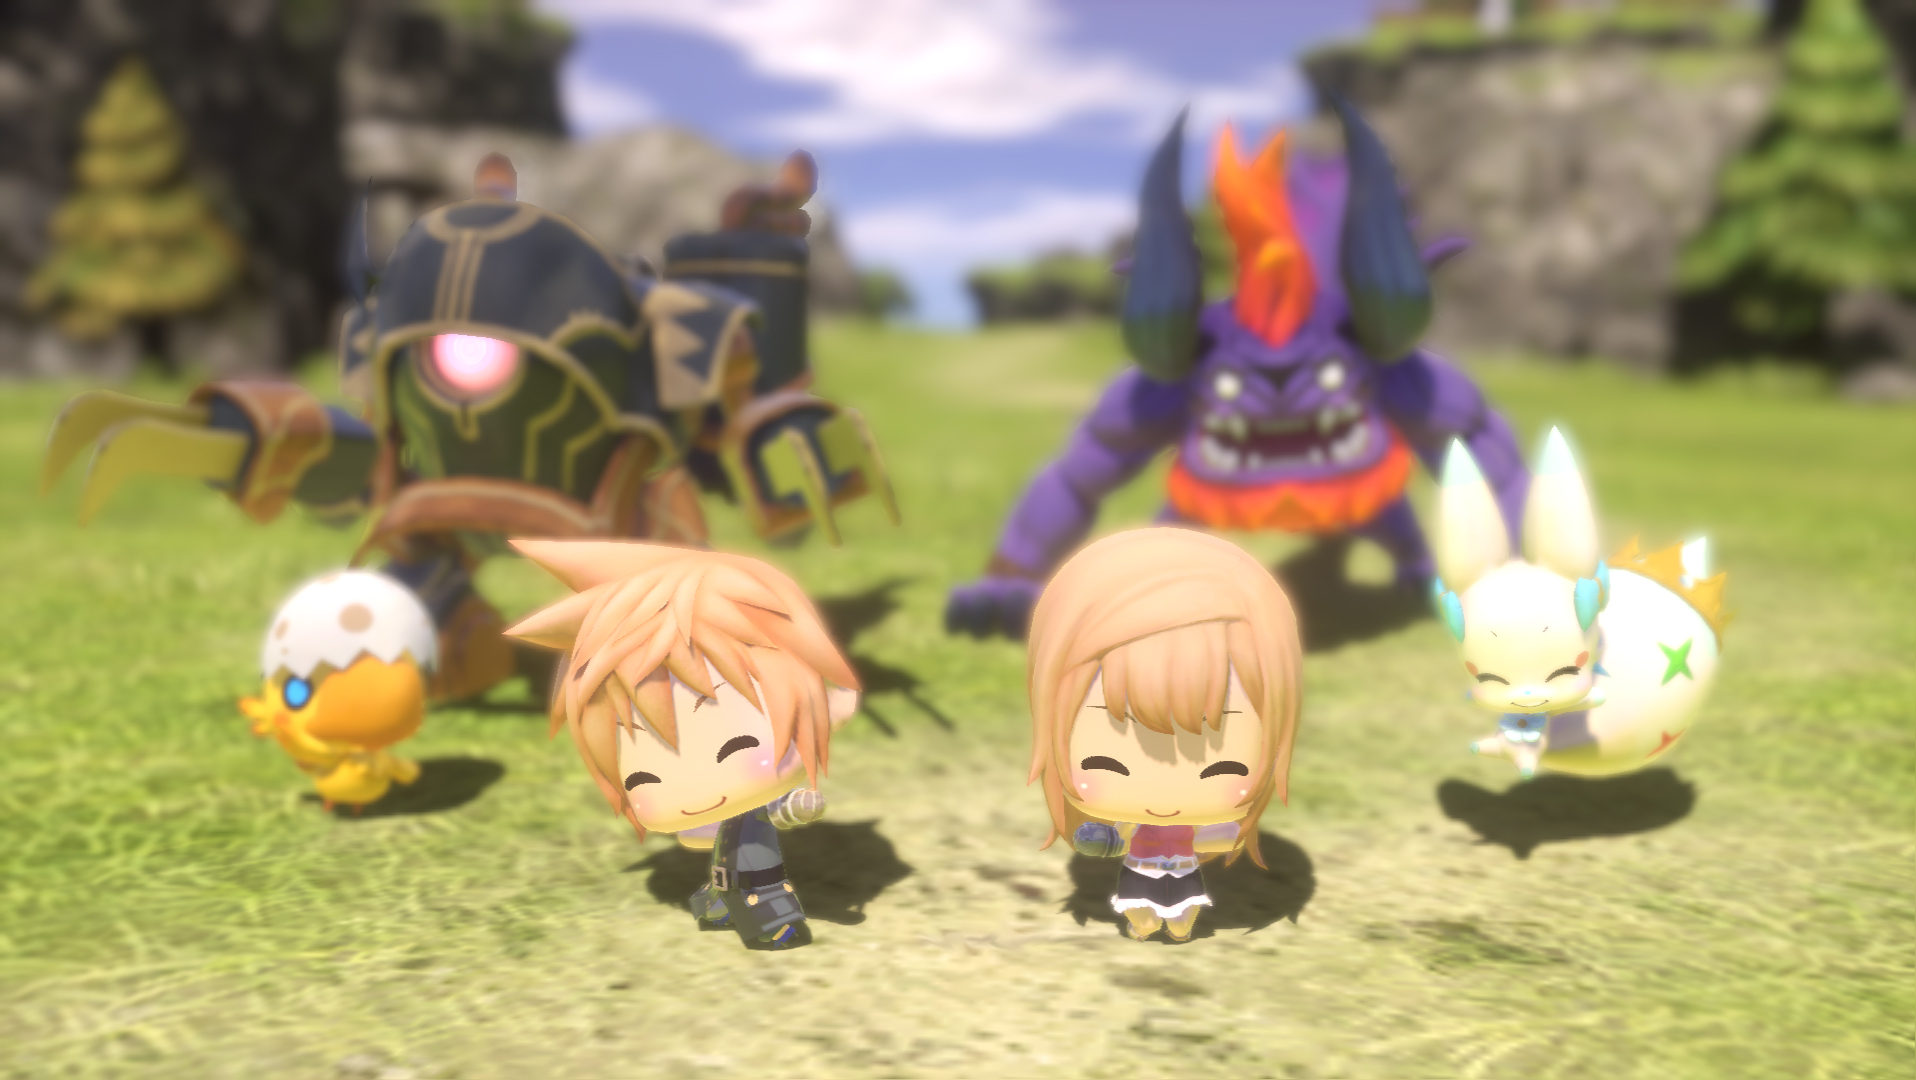 The New World of Final Fantasy Trailer Is Adorable